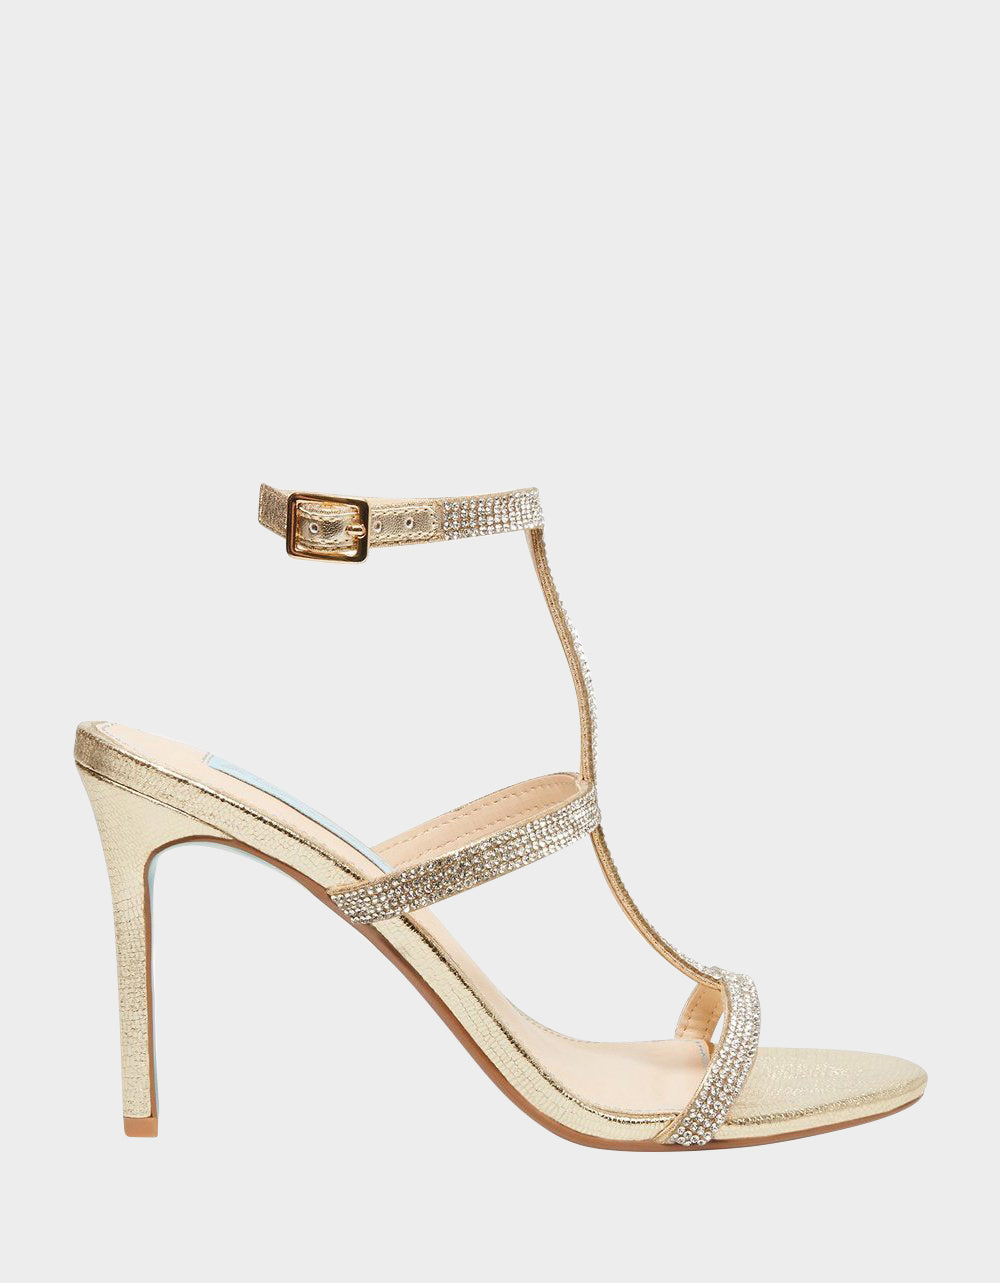 SB-TATE GOLD - SHOES - Betsey Johnson